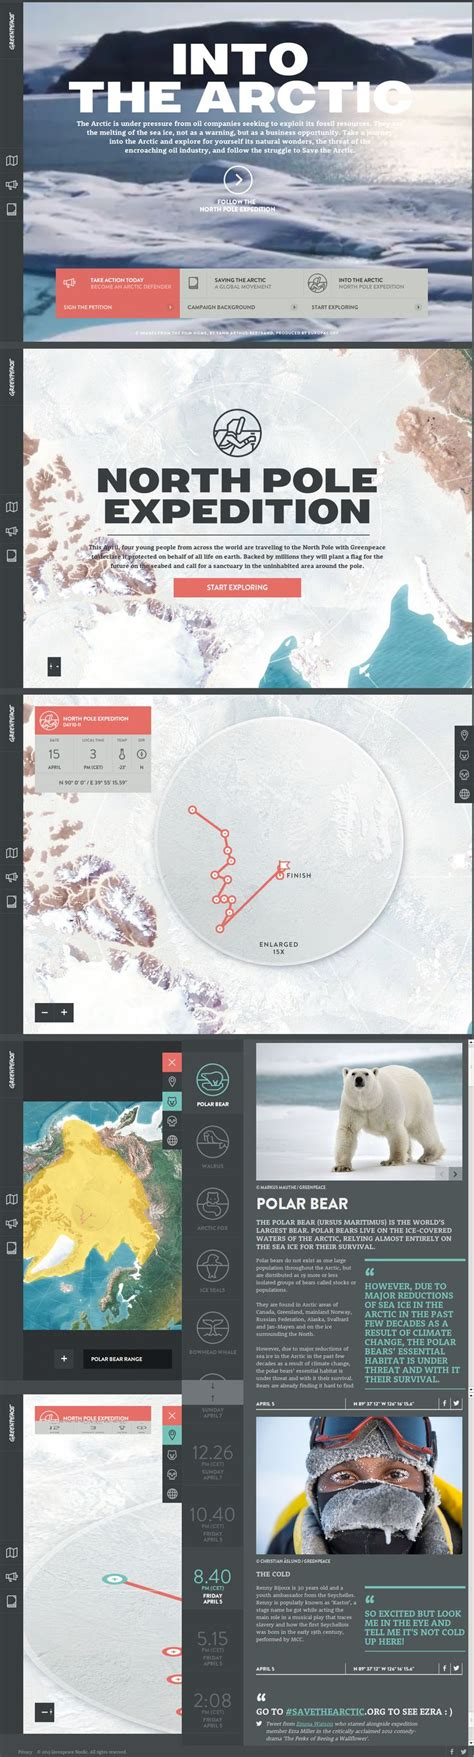 layout design awards into the arctic greenpeace http www awwwards com web